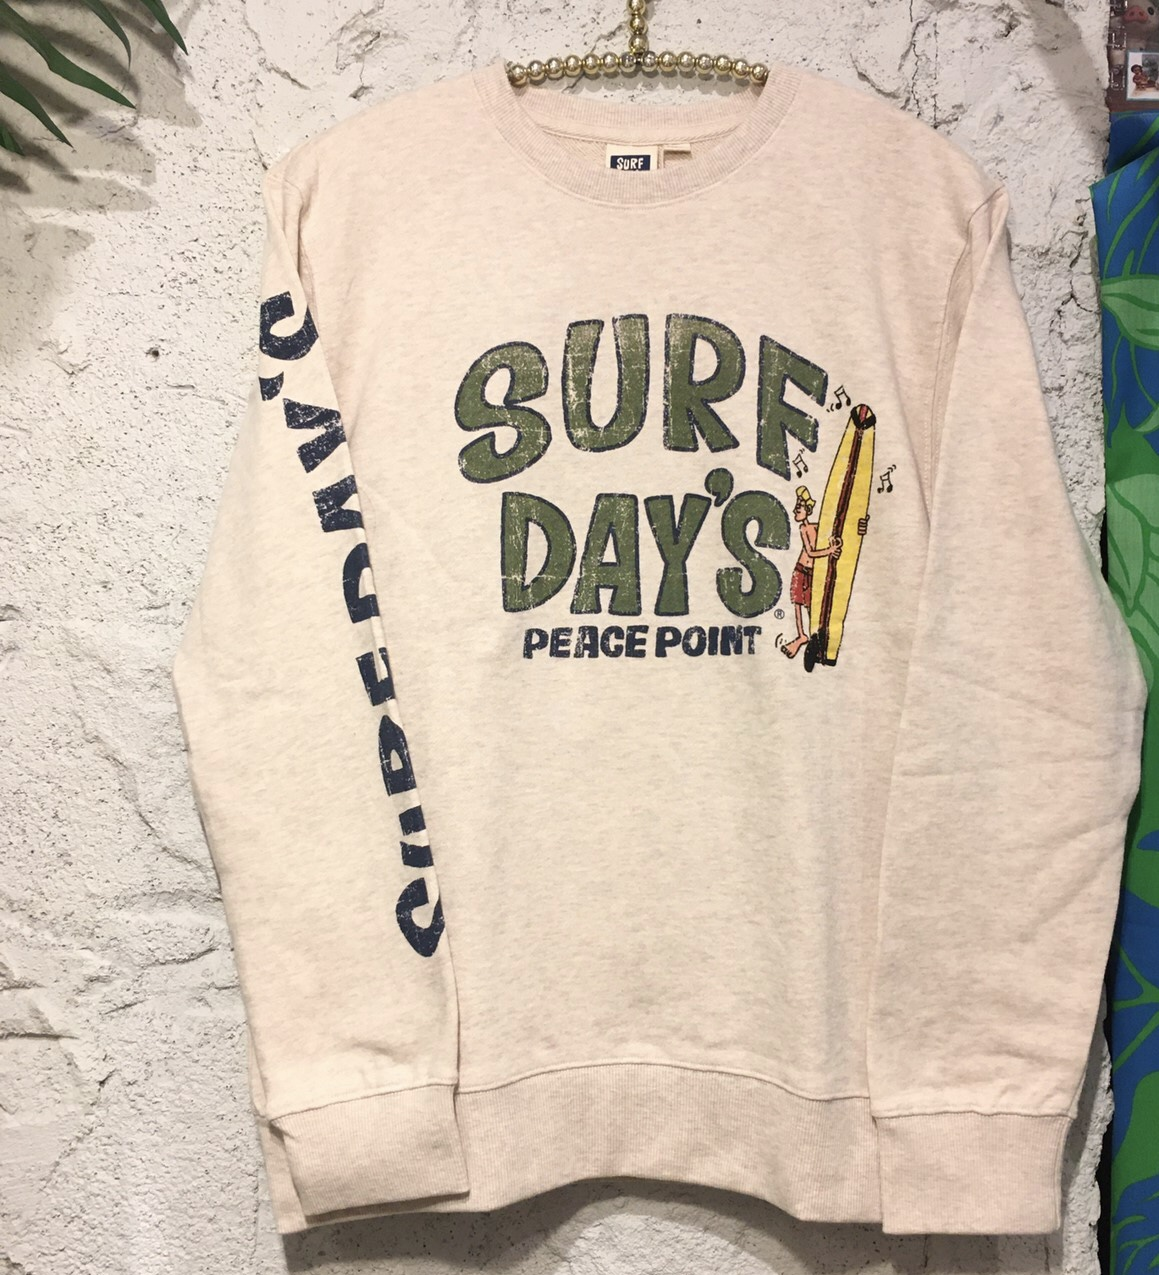 【SURF DAY'S】メンズトレーナーpeace Point/IVO /M/L/